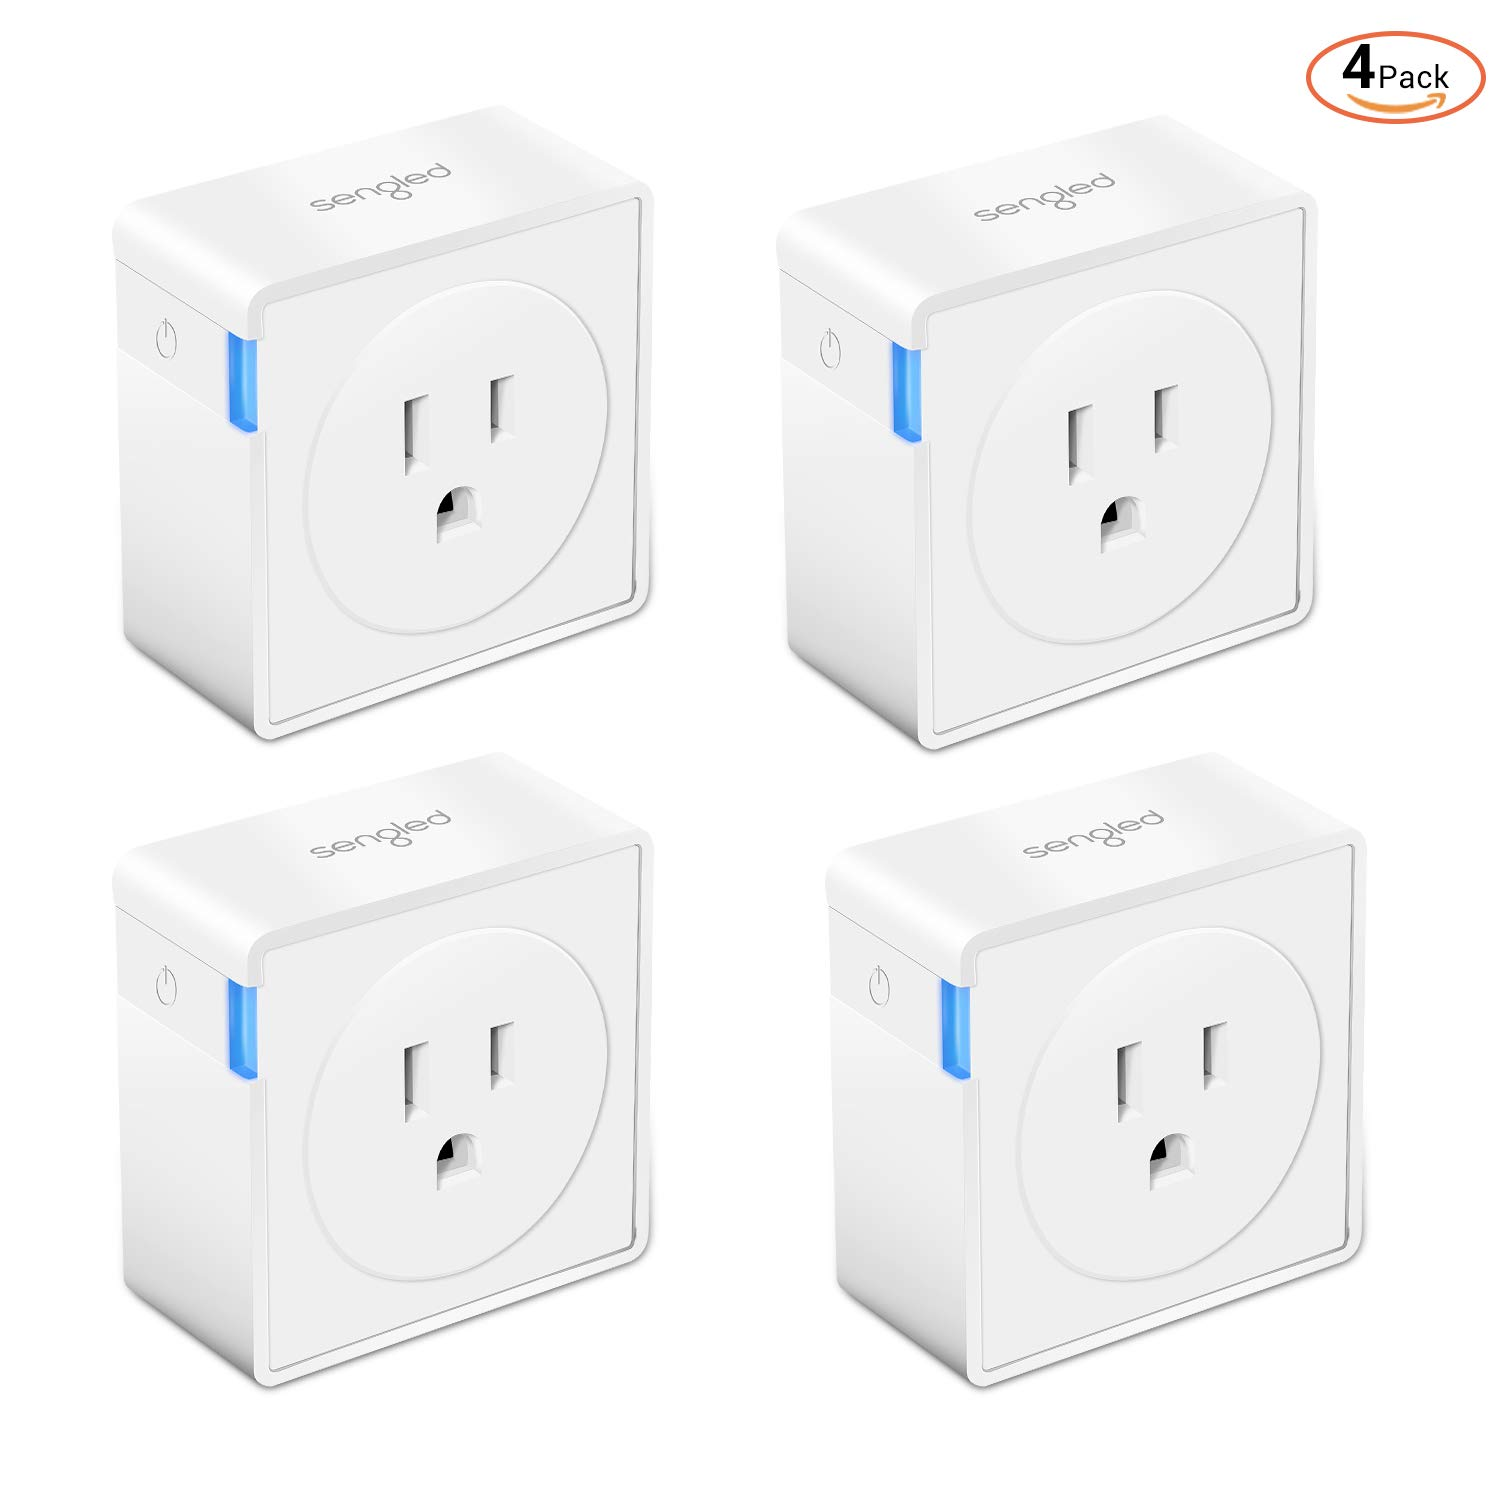 Smart Plug Outlet with Timer Function by Sengled, Compatible with Alexa, Google Home, Smart Hub Required, App Control, Type B Mini Smart Socket (4 Pack)